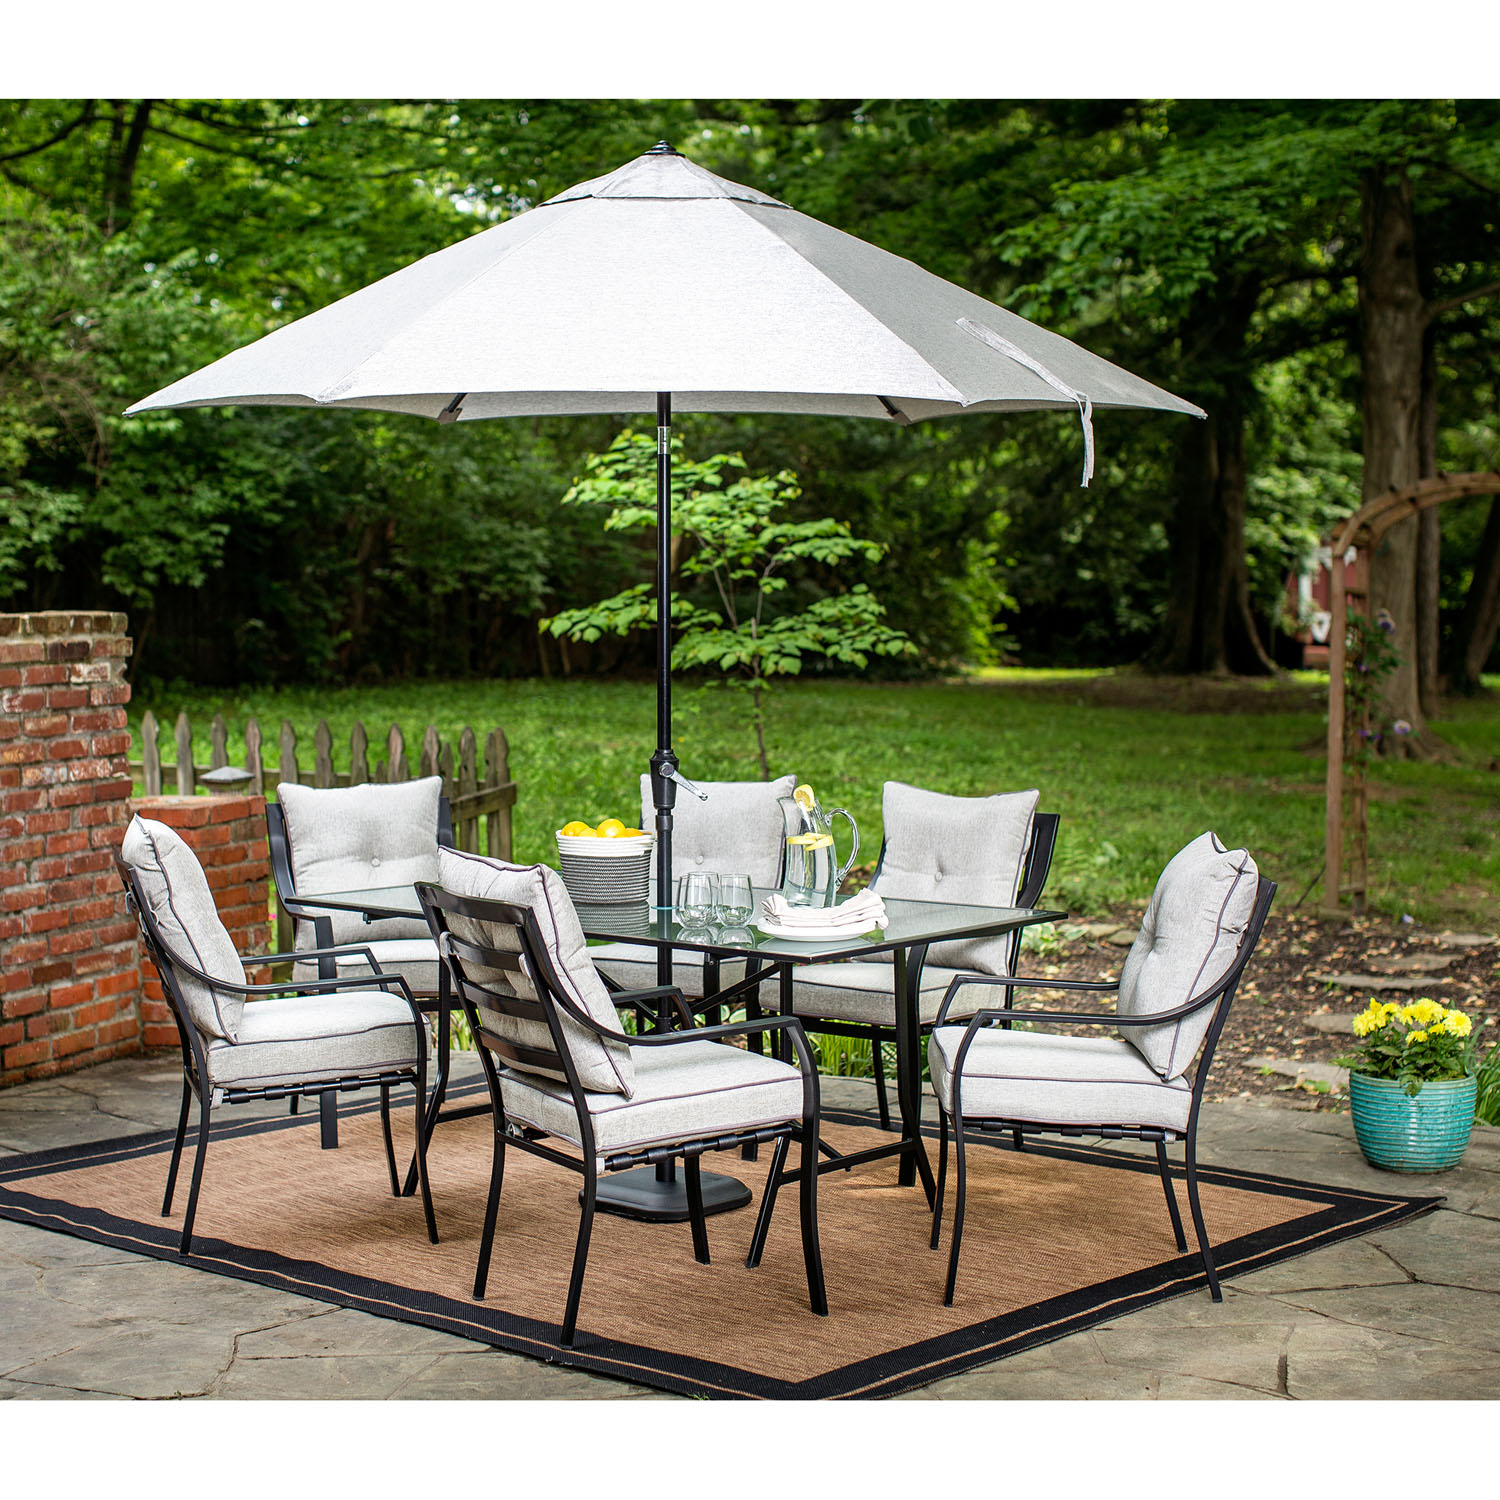 Hanover Lavallette 7-Piece Outdoor Dining Set with Table Umbrella and Stand